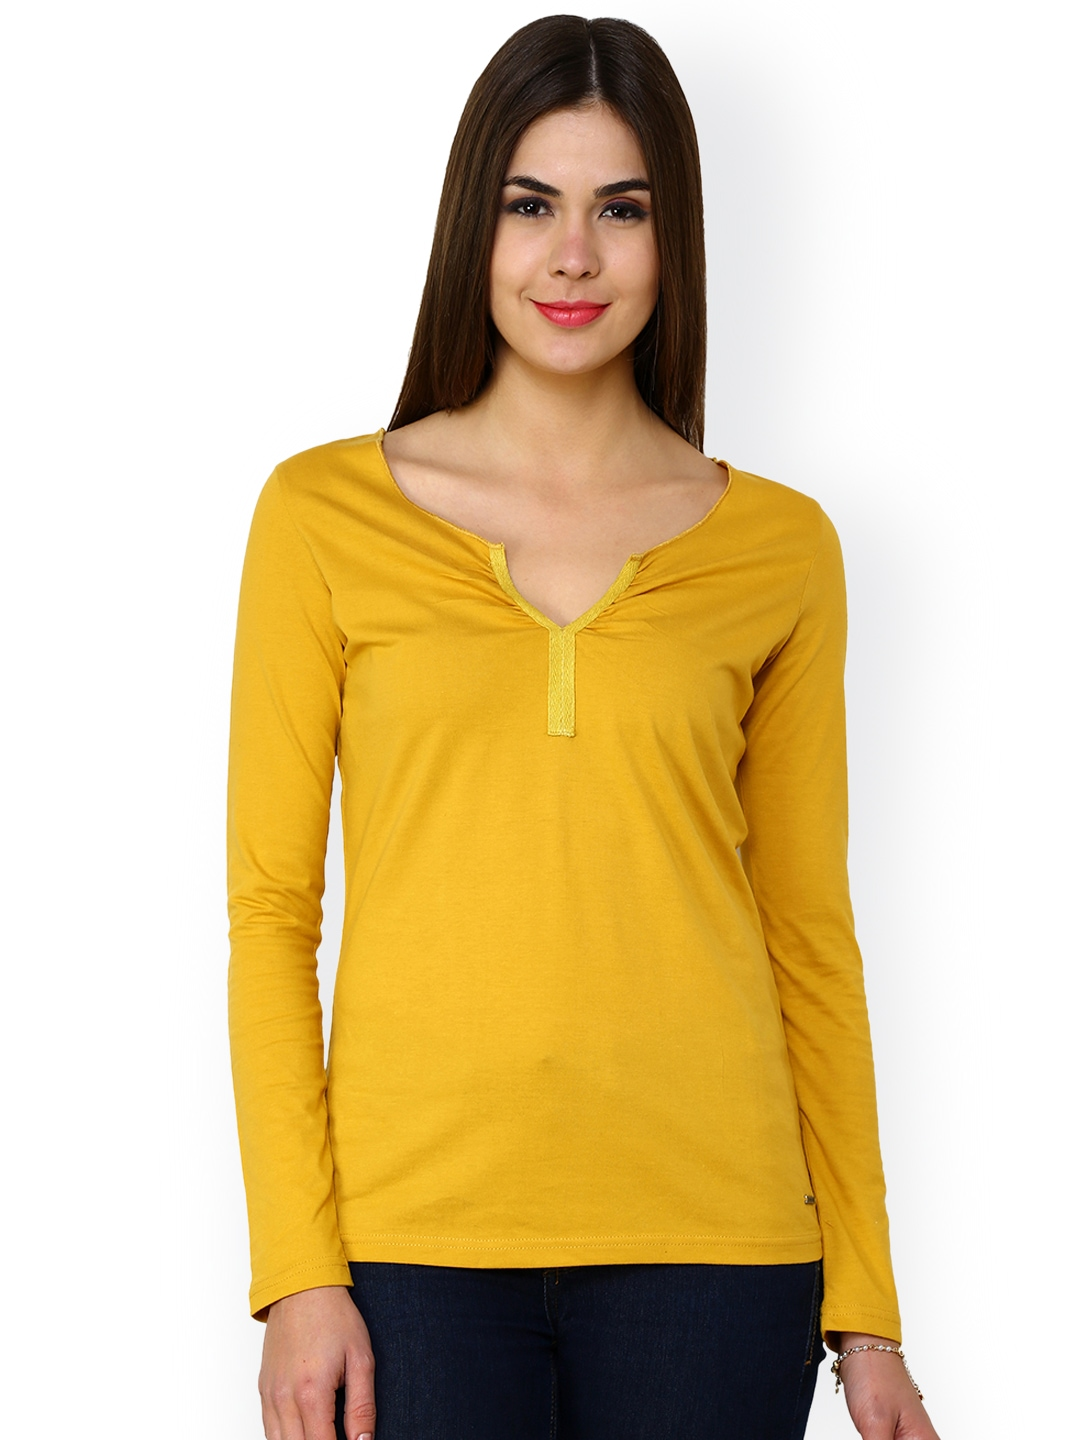 Yellow robe tops can be purchased in Canifis from Barker and his store, Barkers' Haberdashery. The robe tops come in five different colours; grey, red, yellow.